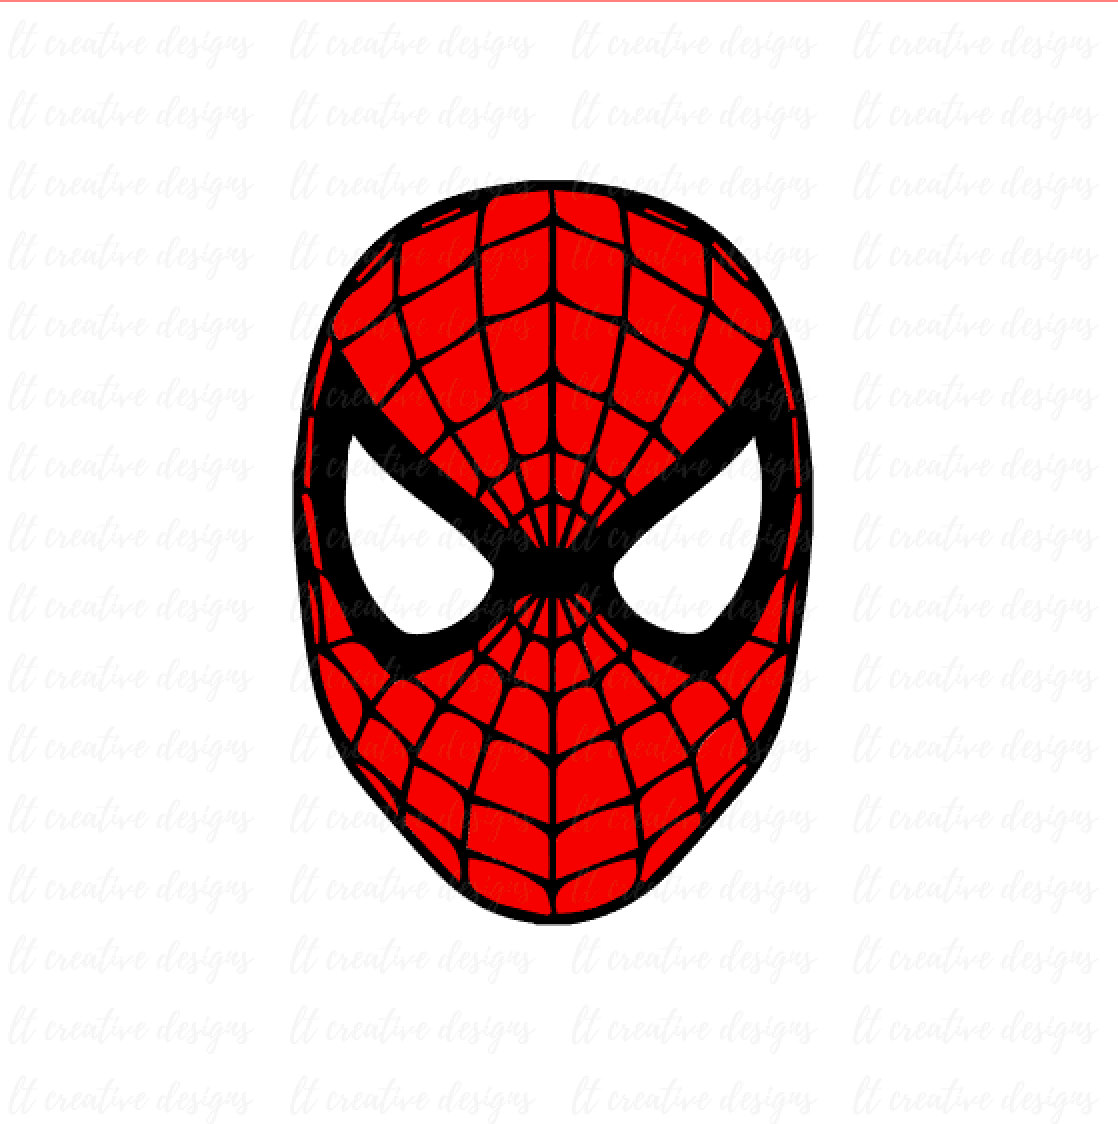 Spiderman clipart face image black and white stock Spiderman Face Clipart   Free download best Spiderman Face ... image black and white stock